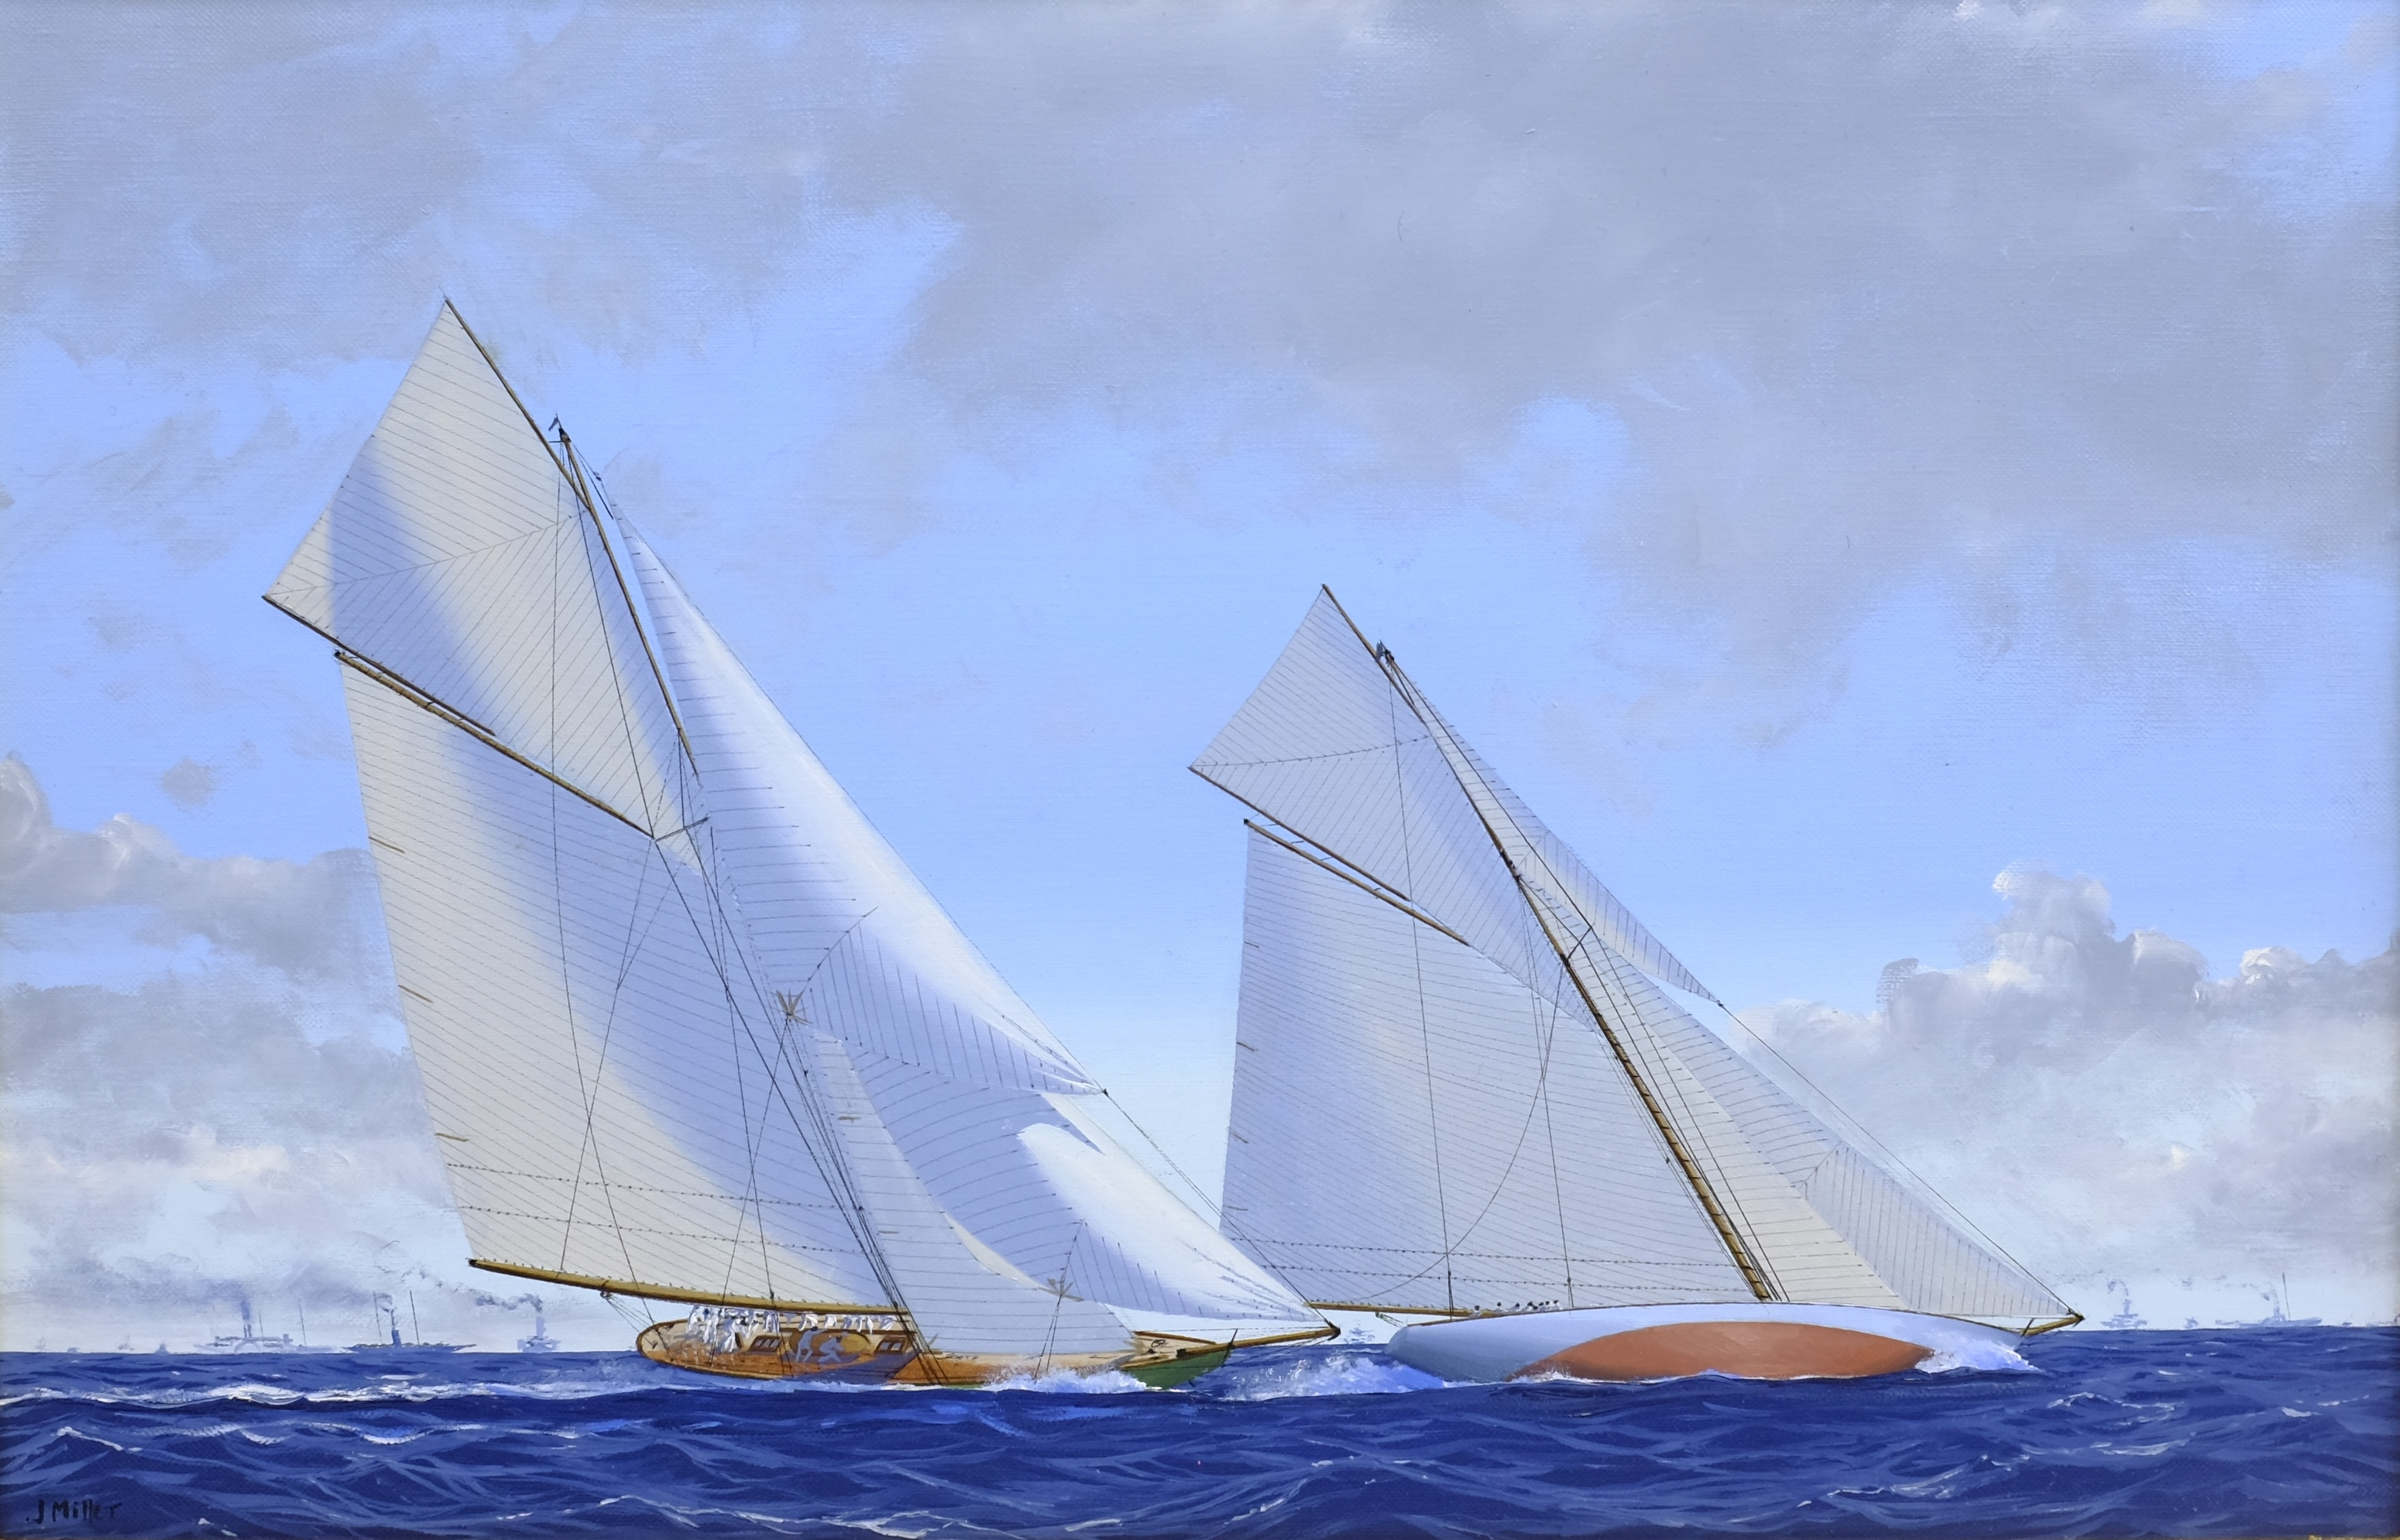 James Miller (British 1962-): 'Shamrock II' & 'Columbia' in the America's Cup Series 11th challenge